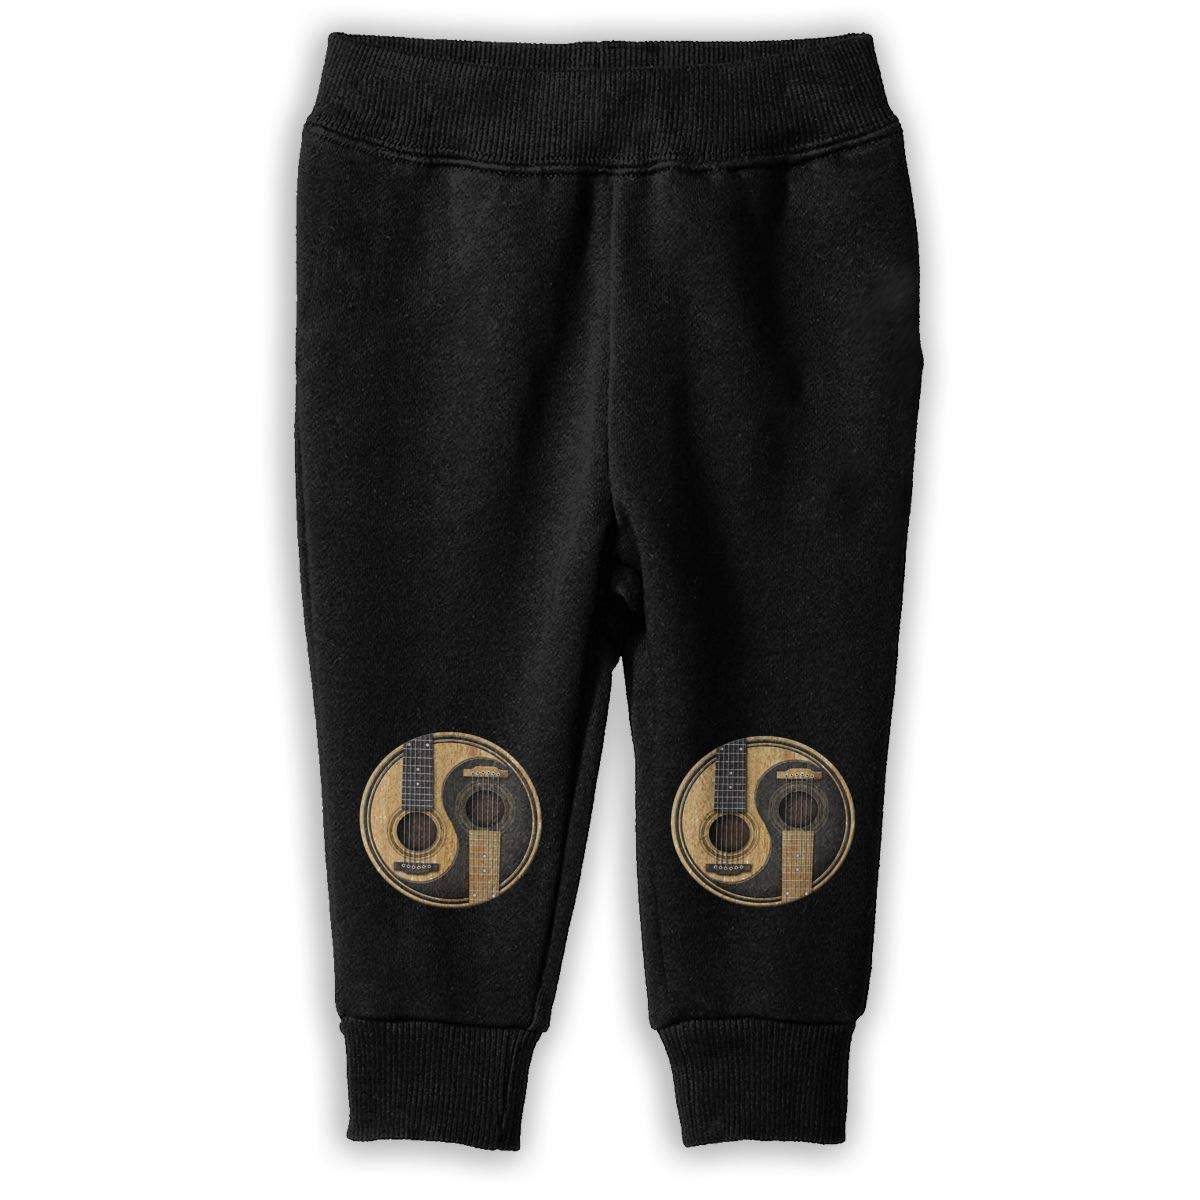 Printed Old and Worn Acoustic Guitars Yin Yang Childrens Boys /& Girls Unisex Sports Sweatpants